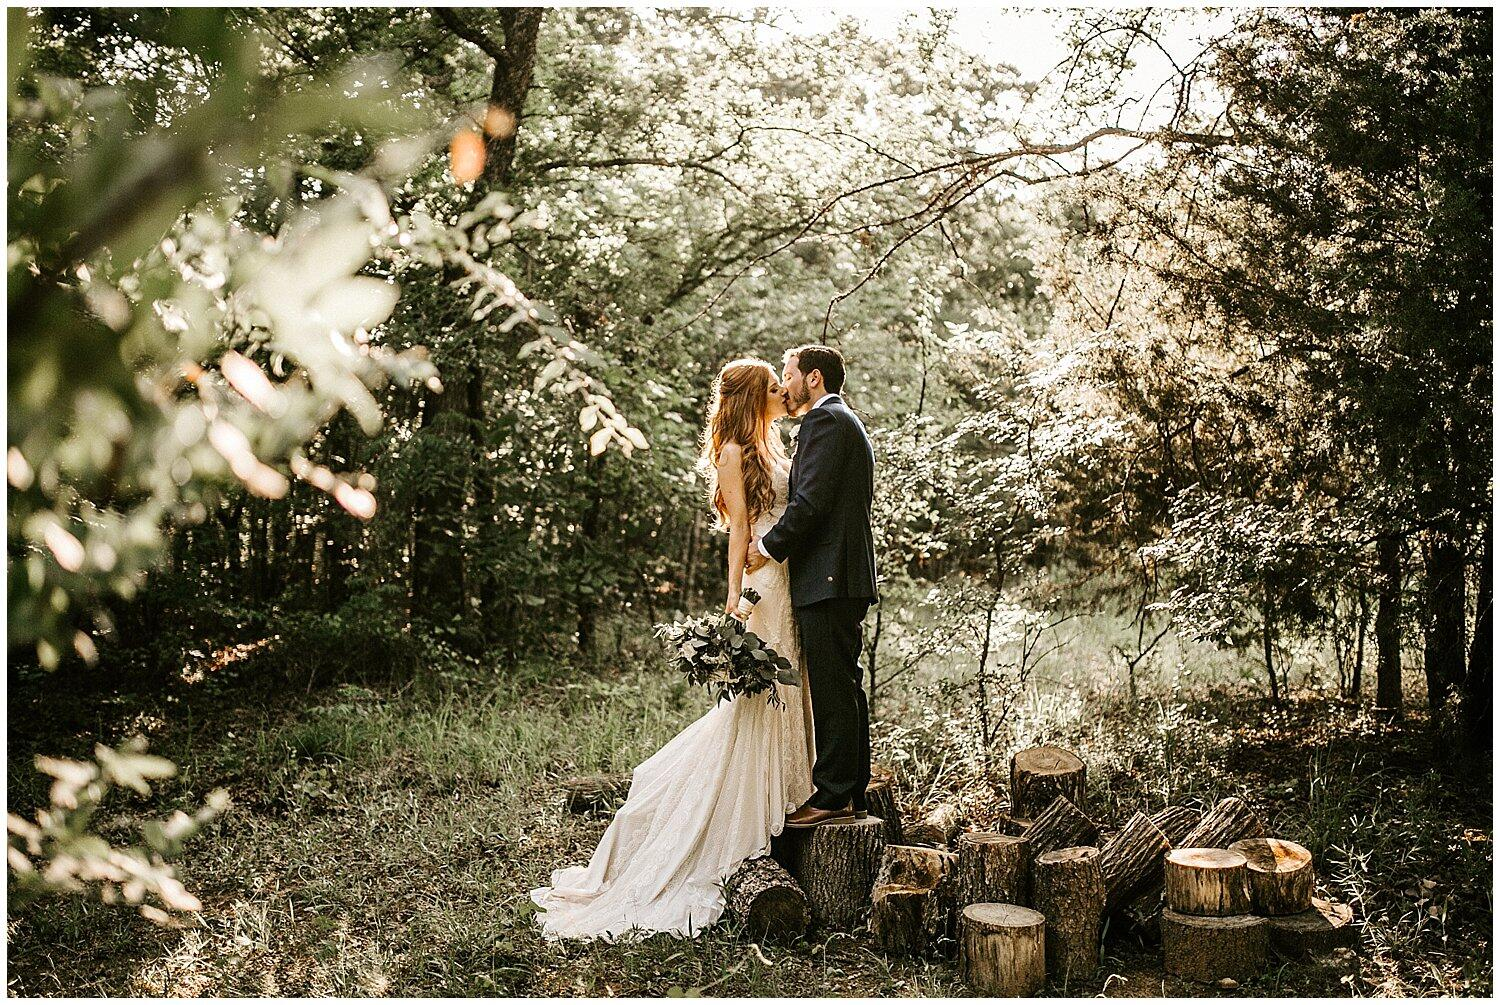 Bride with a bouquet in hand and groom holding the bride pose for a kiss in the wild